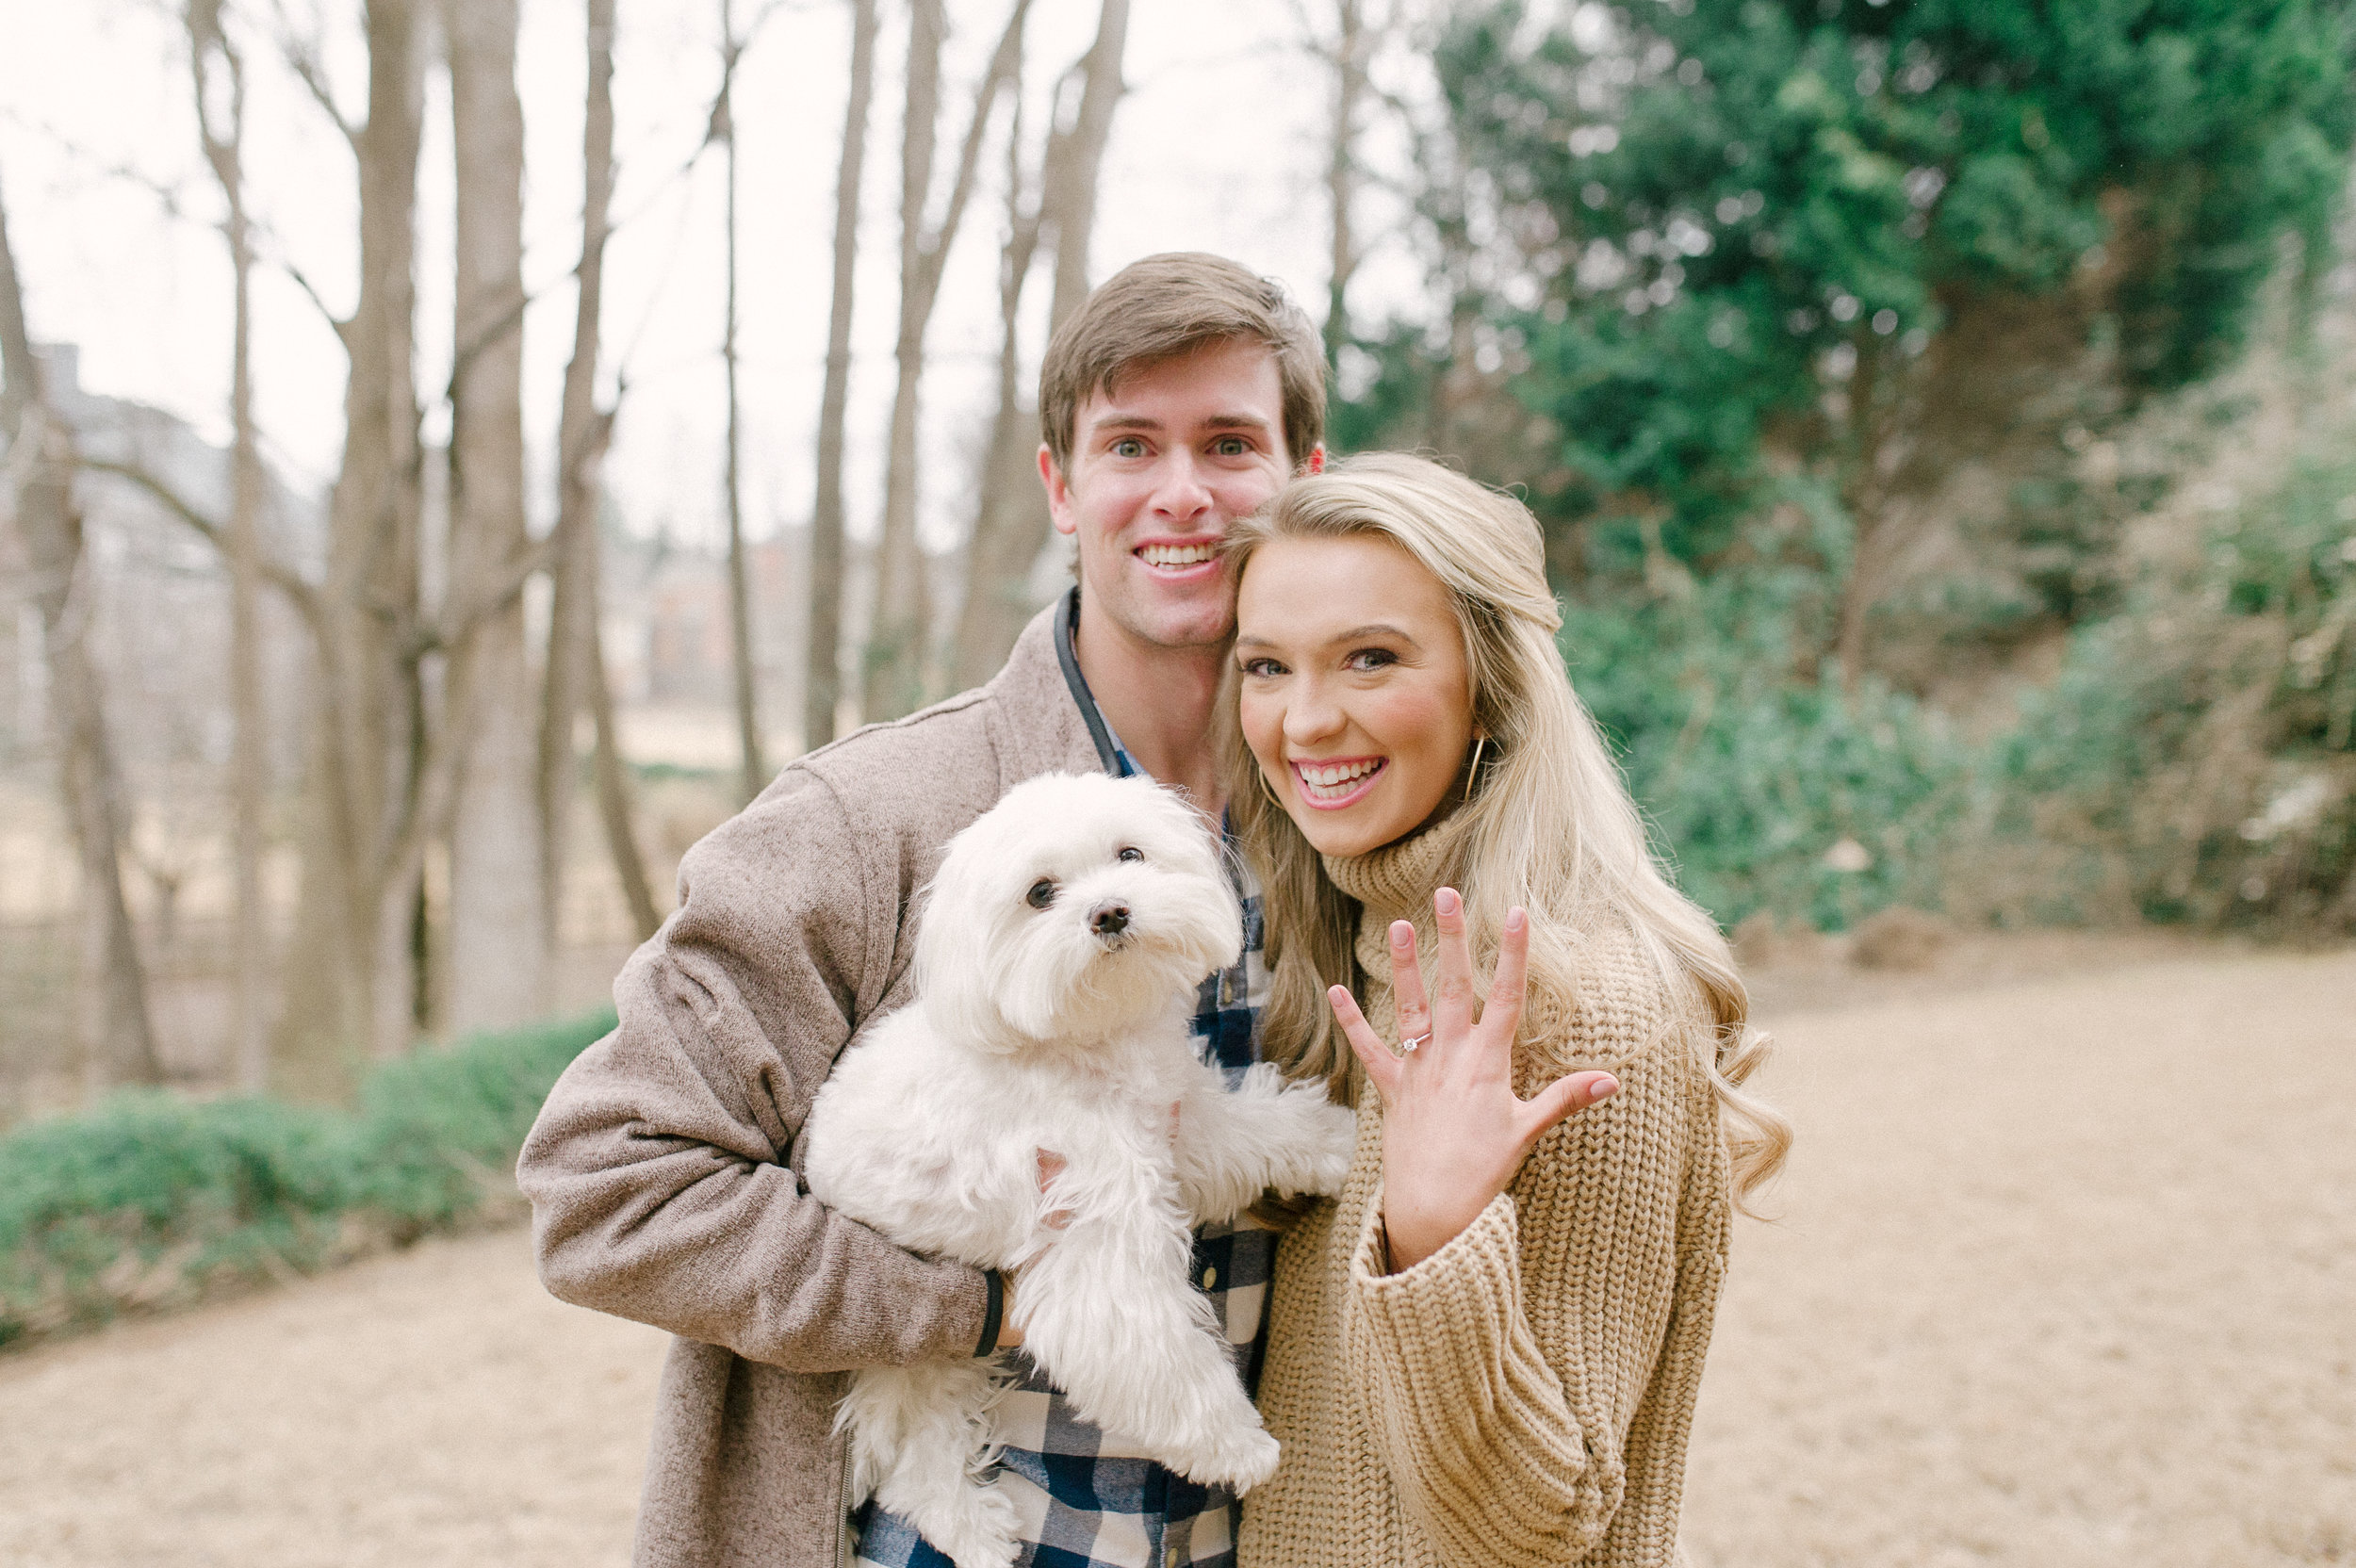 Hannah-forsberg-engagement-proposal-photographer-atlanta-20.jpg